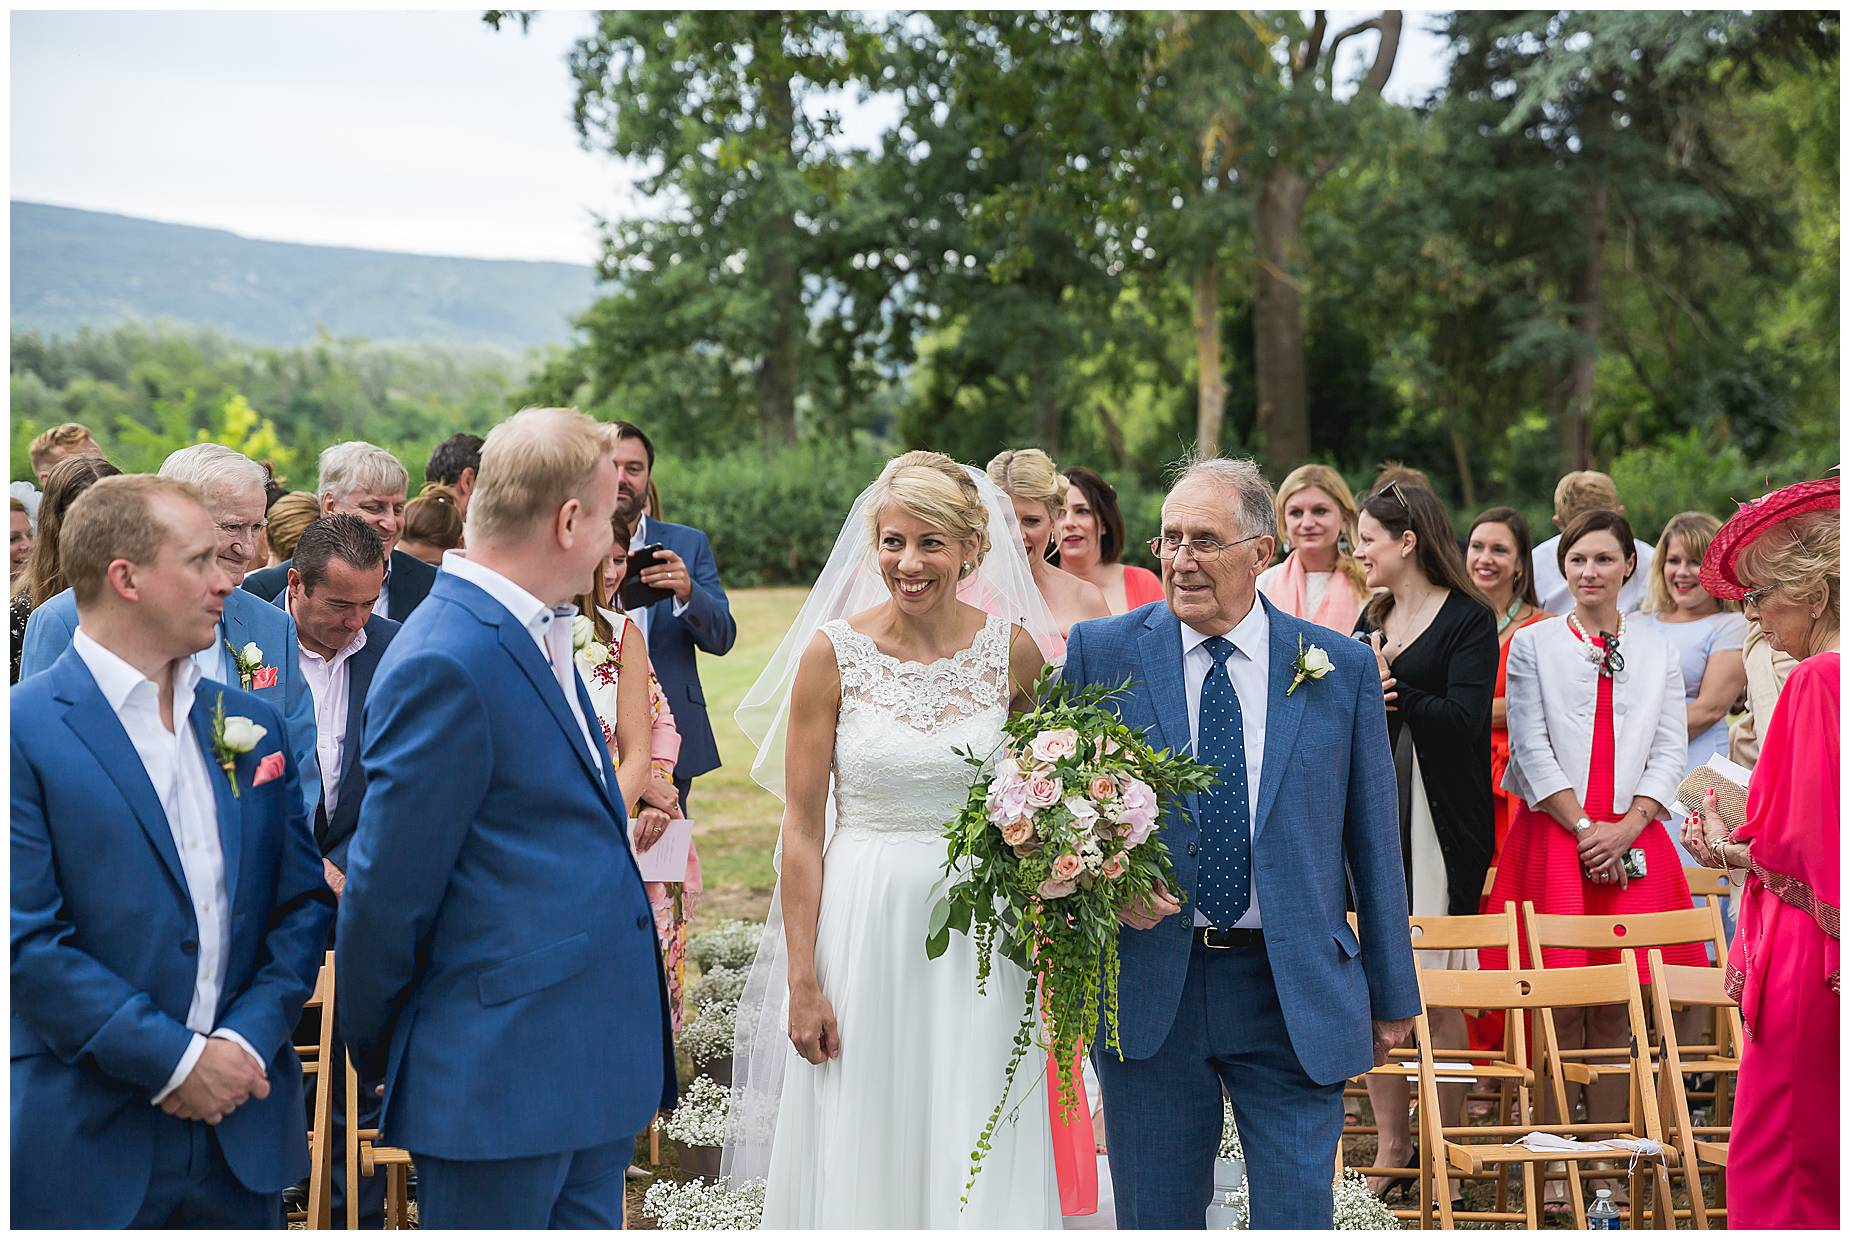 Chateau Blomac Wedding ceremony